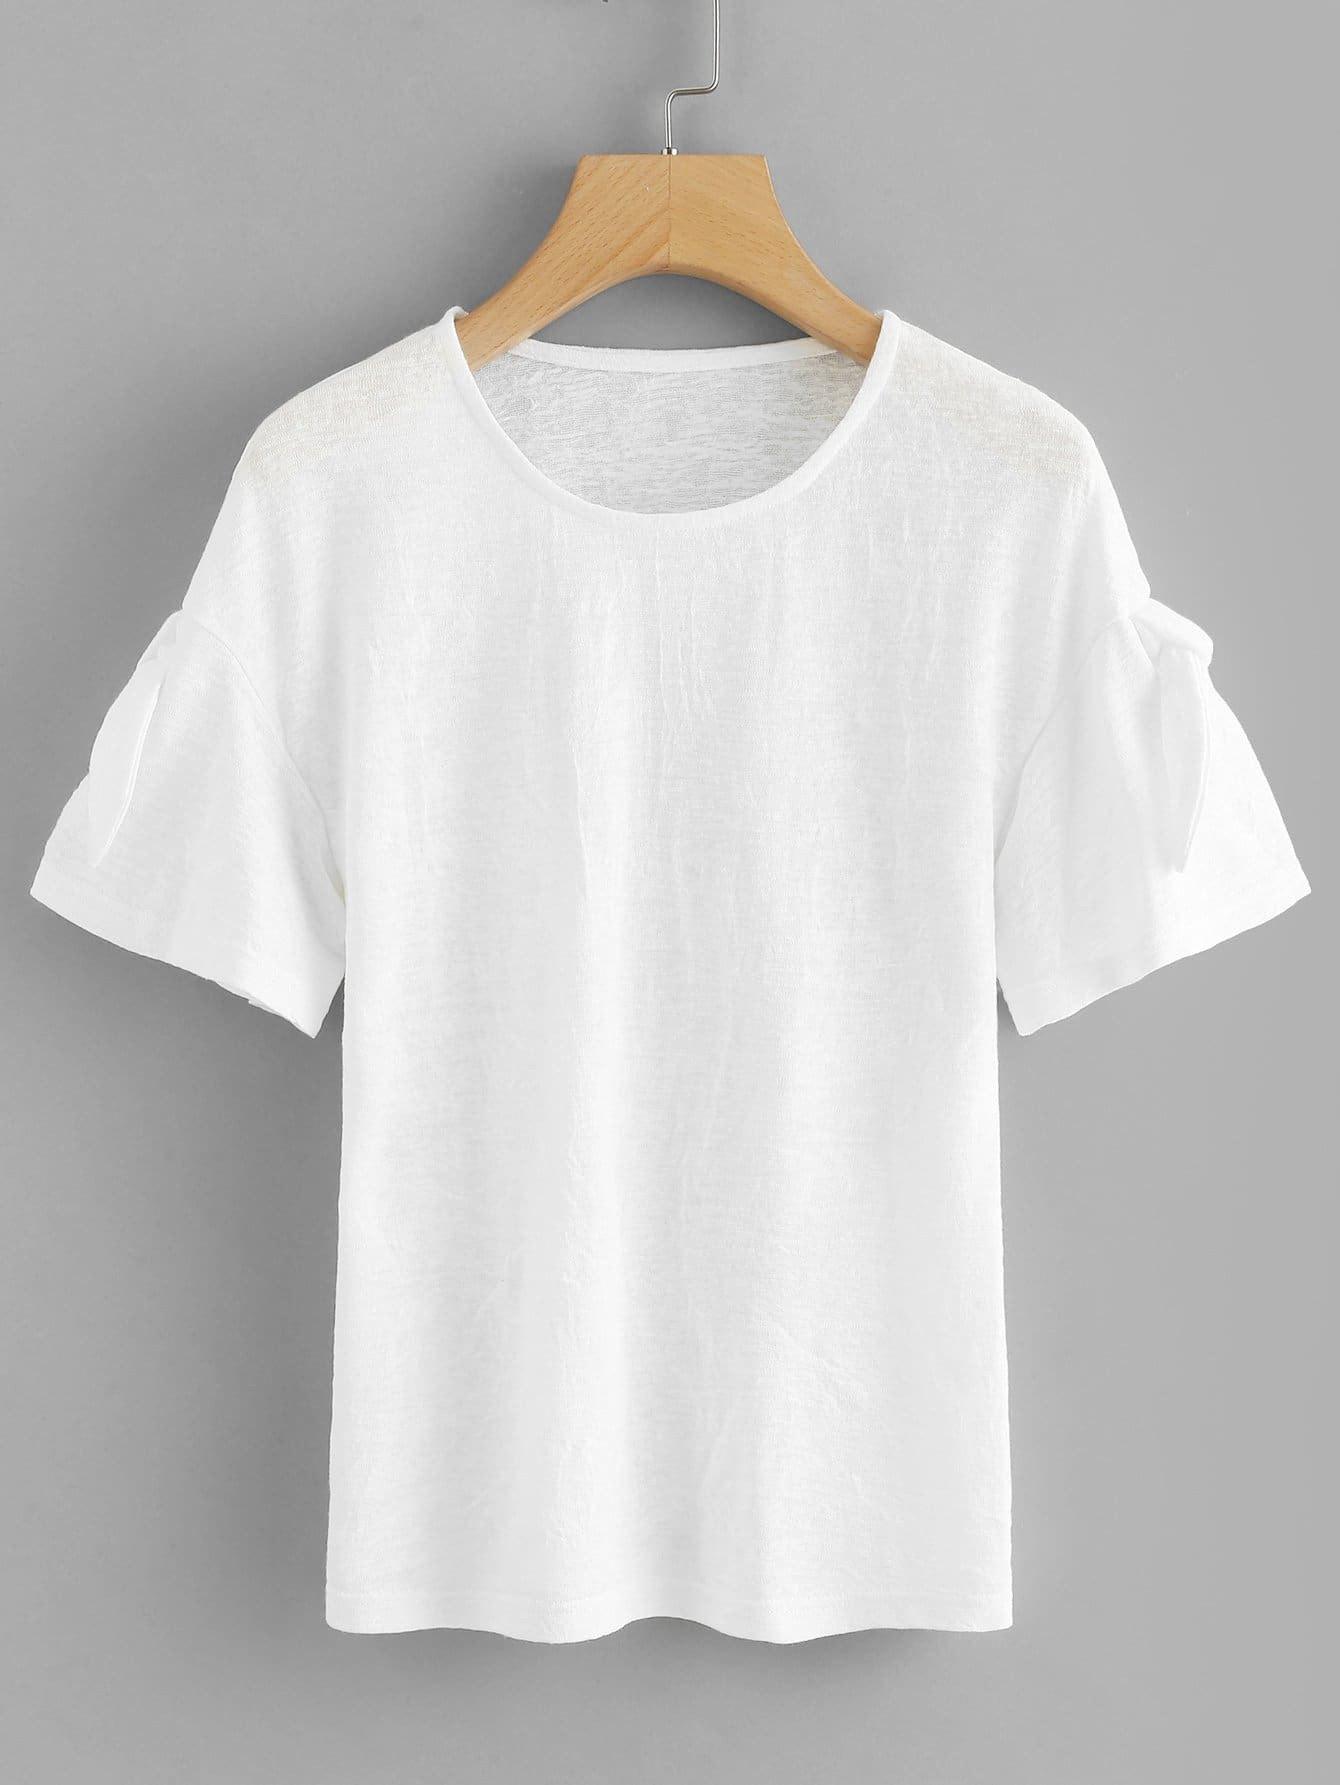 Round Neck Solid Tee floral patched round neck tee